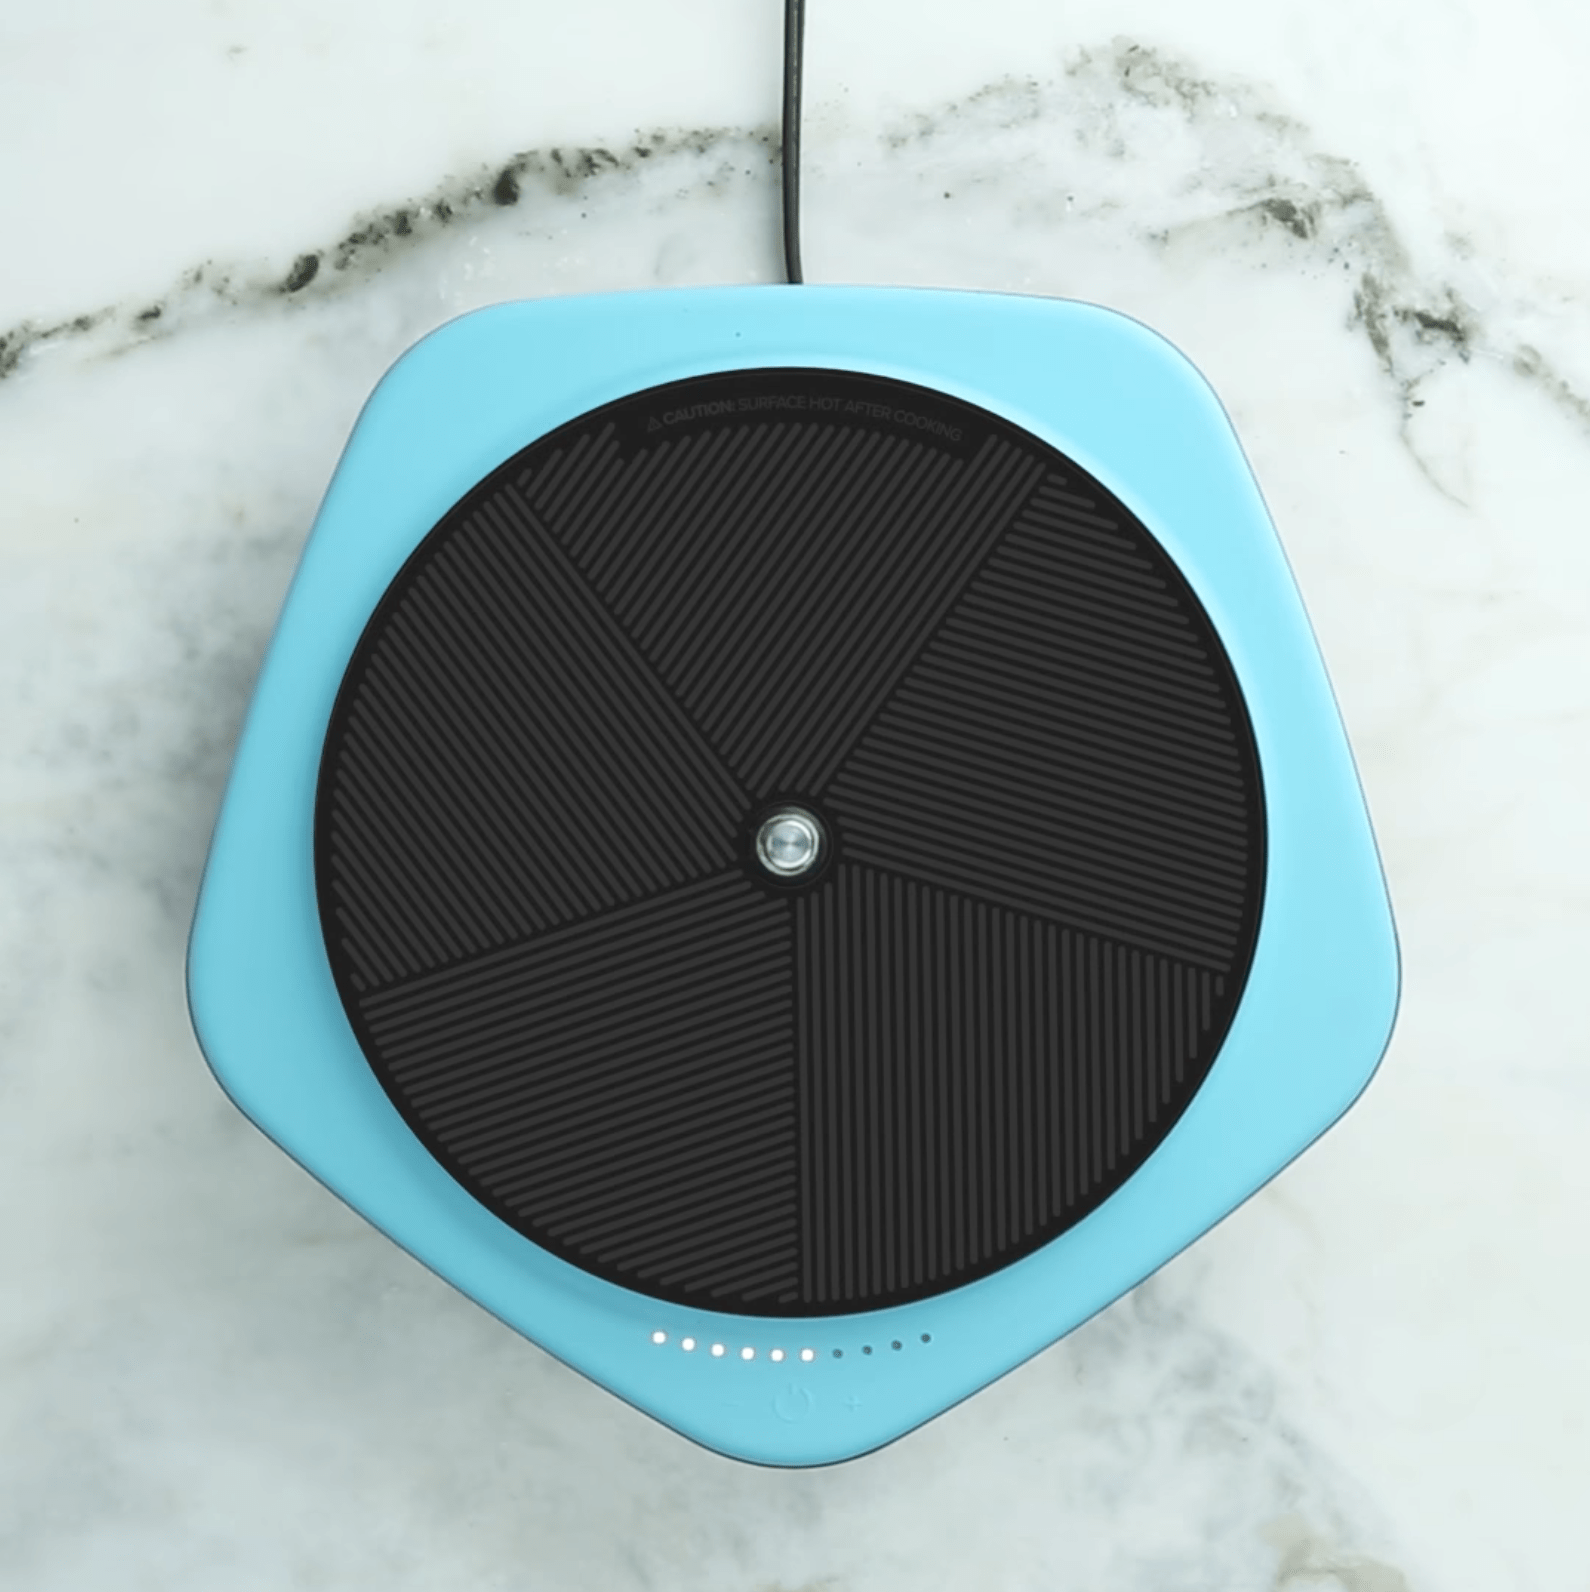 Meet The One Top, A Cooking System From Buzzfeed's Tasty